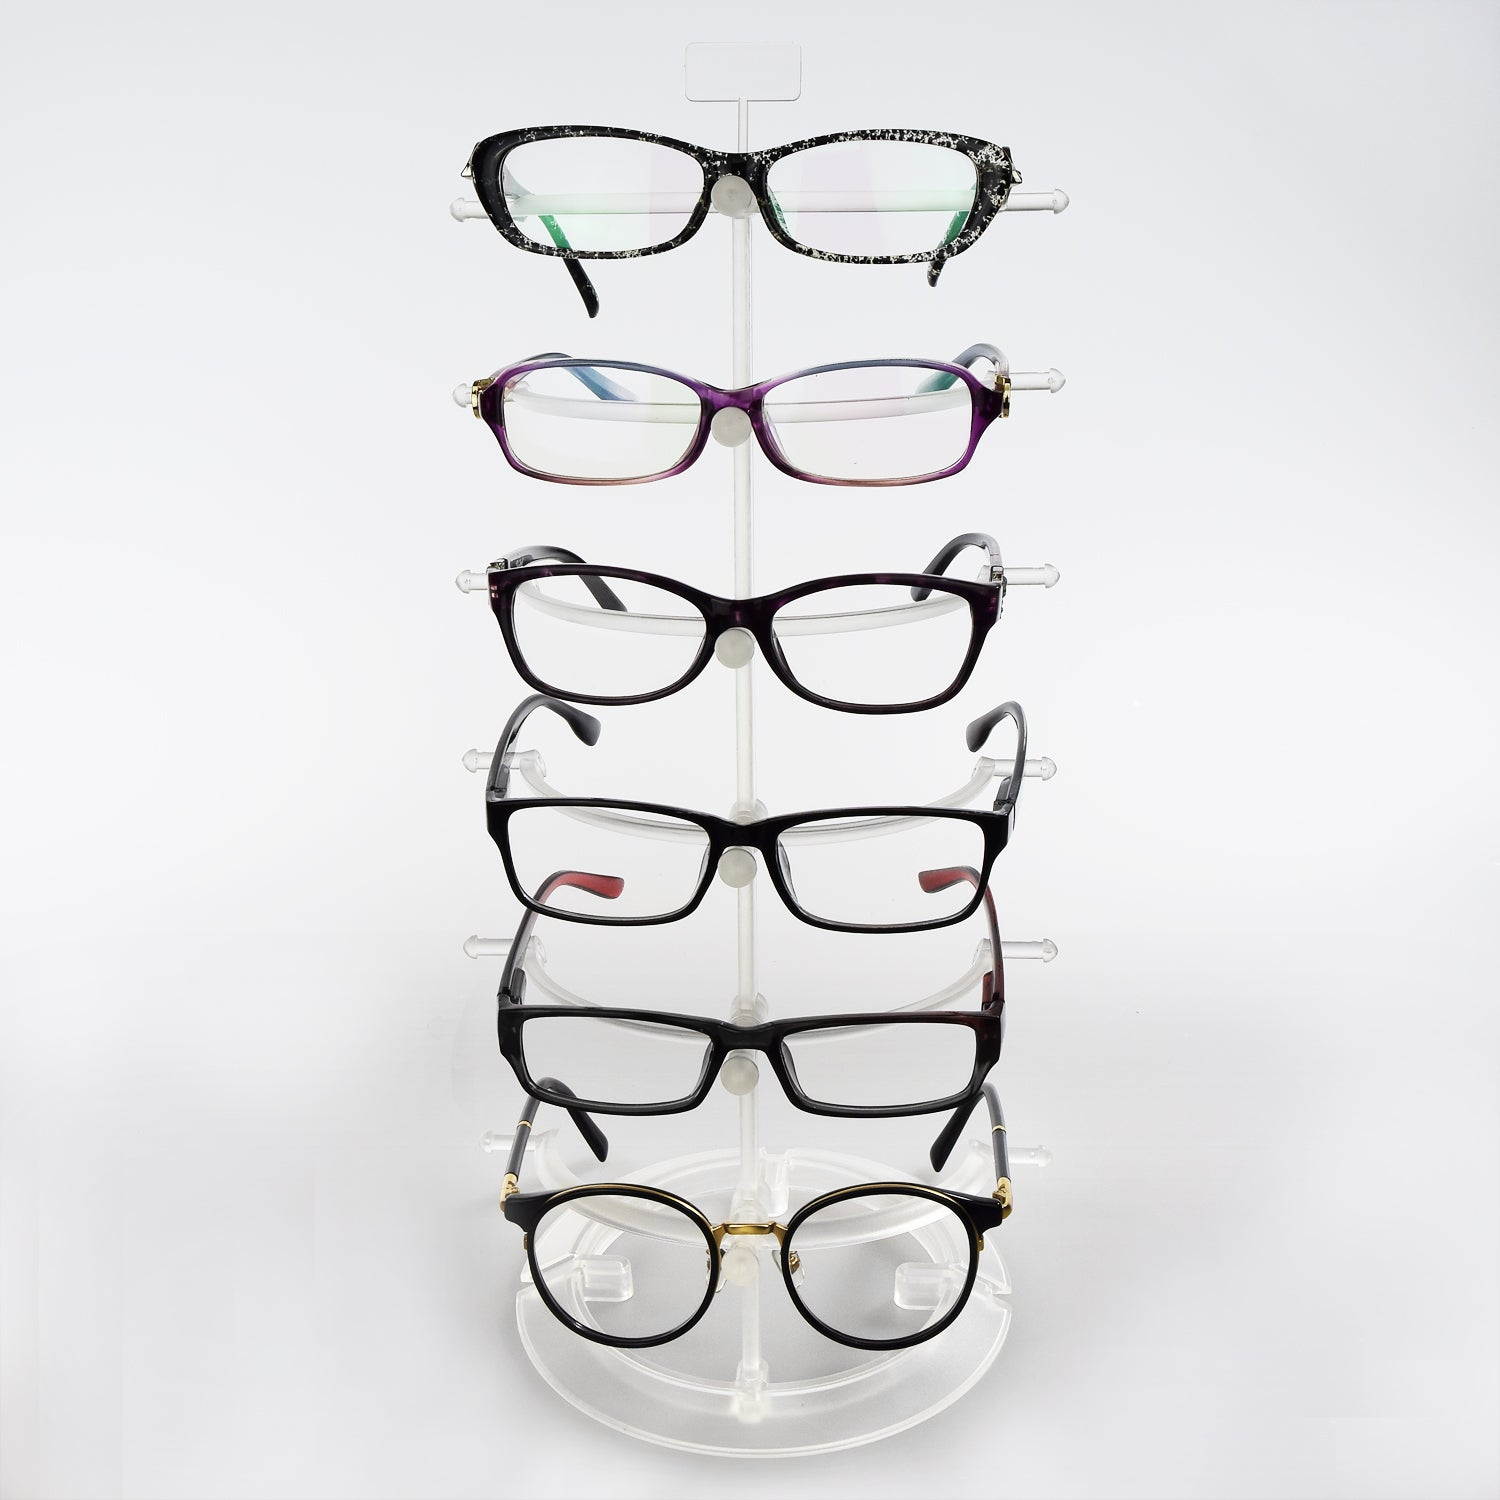 #S31-6251-10 Plastic Counter Top Eyeglass Display Stand For 6 Eyewear Frames. | APEX International